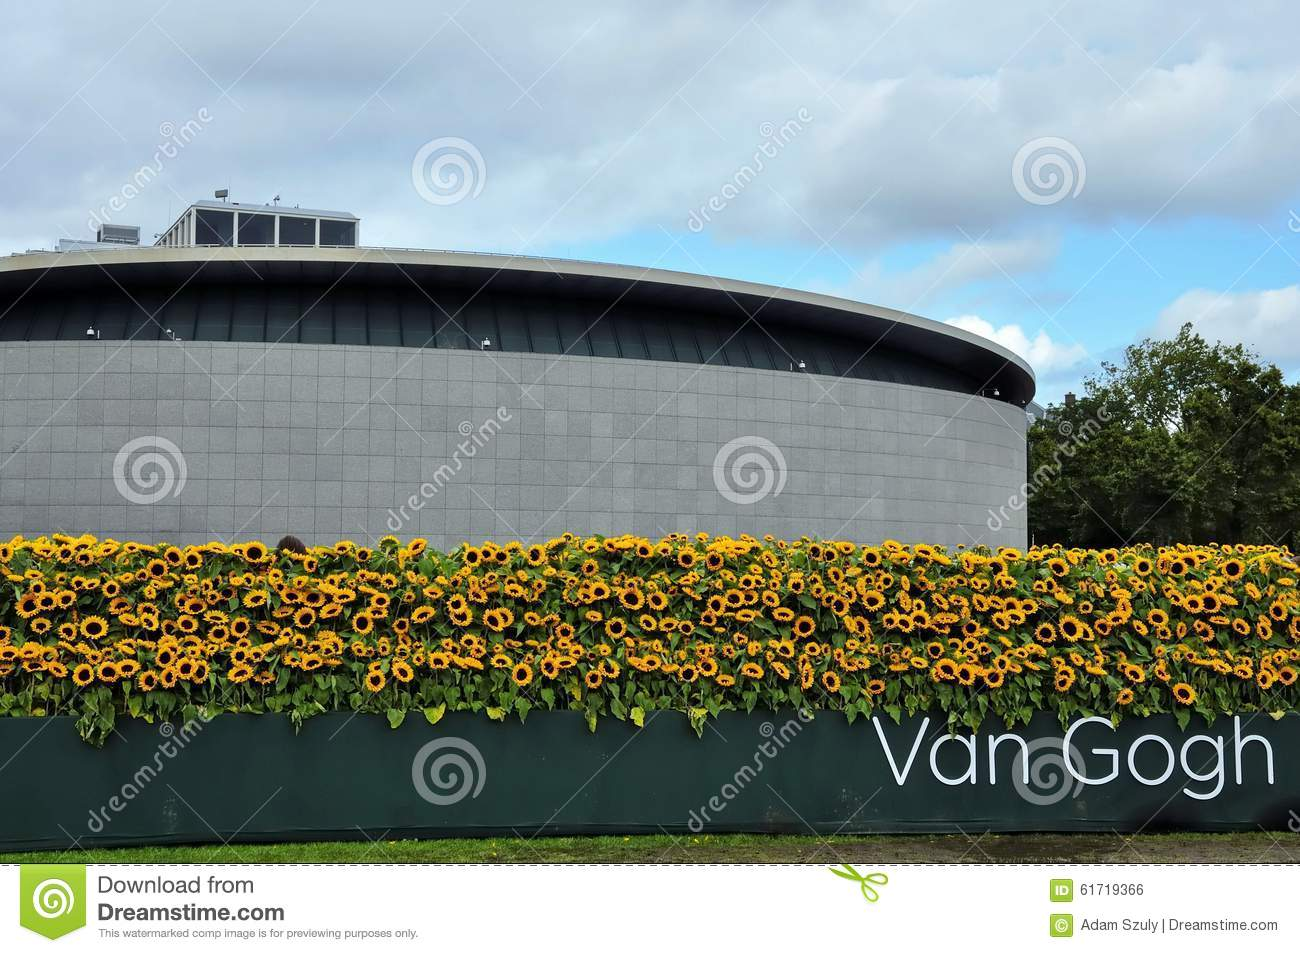 Museo Di Van Gogh.The New Entrance Of The Van Gogh Museum With The Sunflower Labyrinth